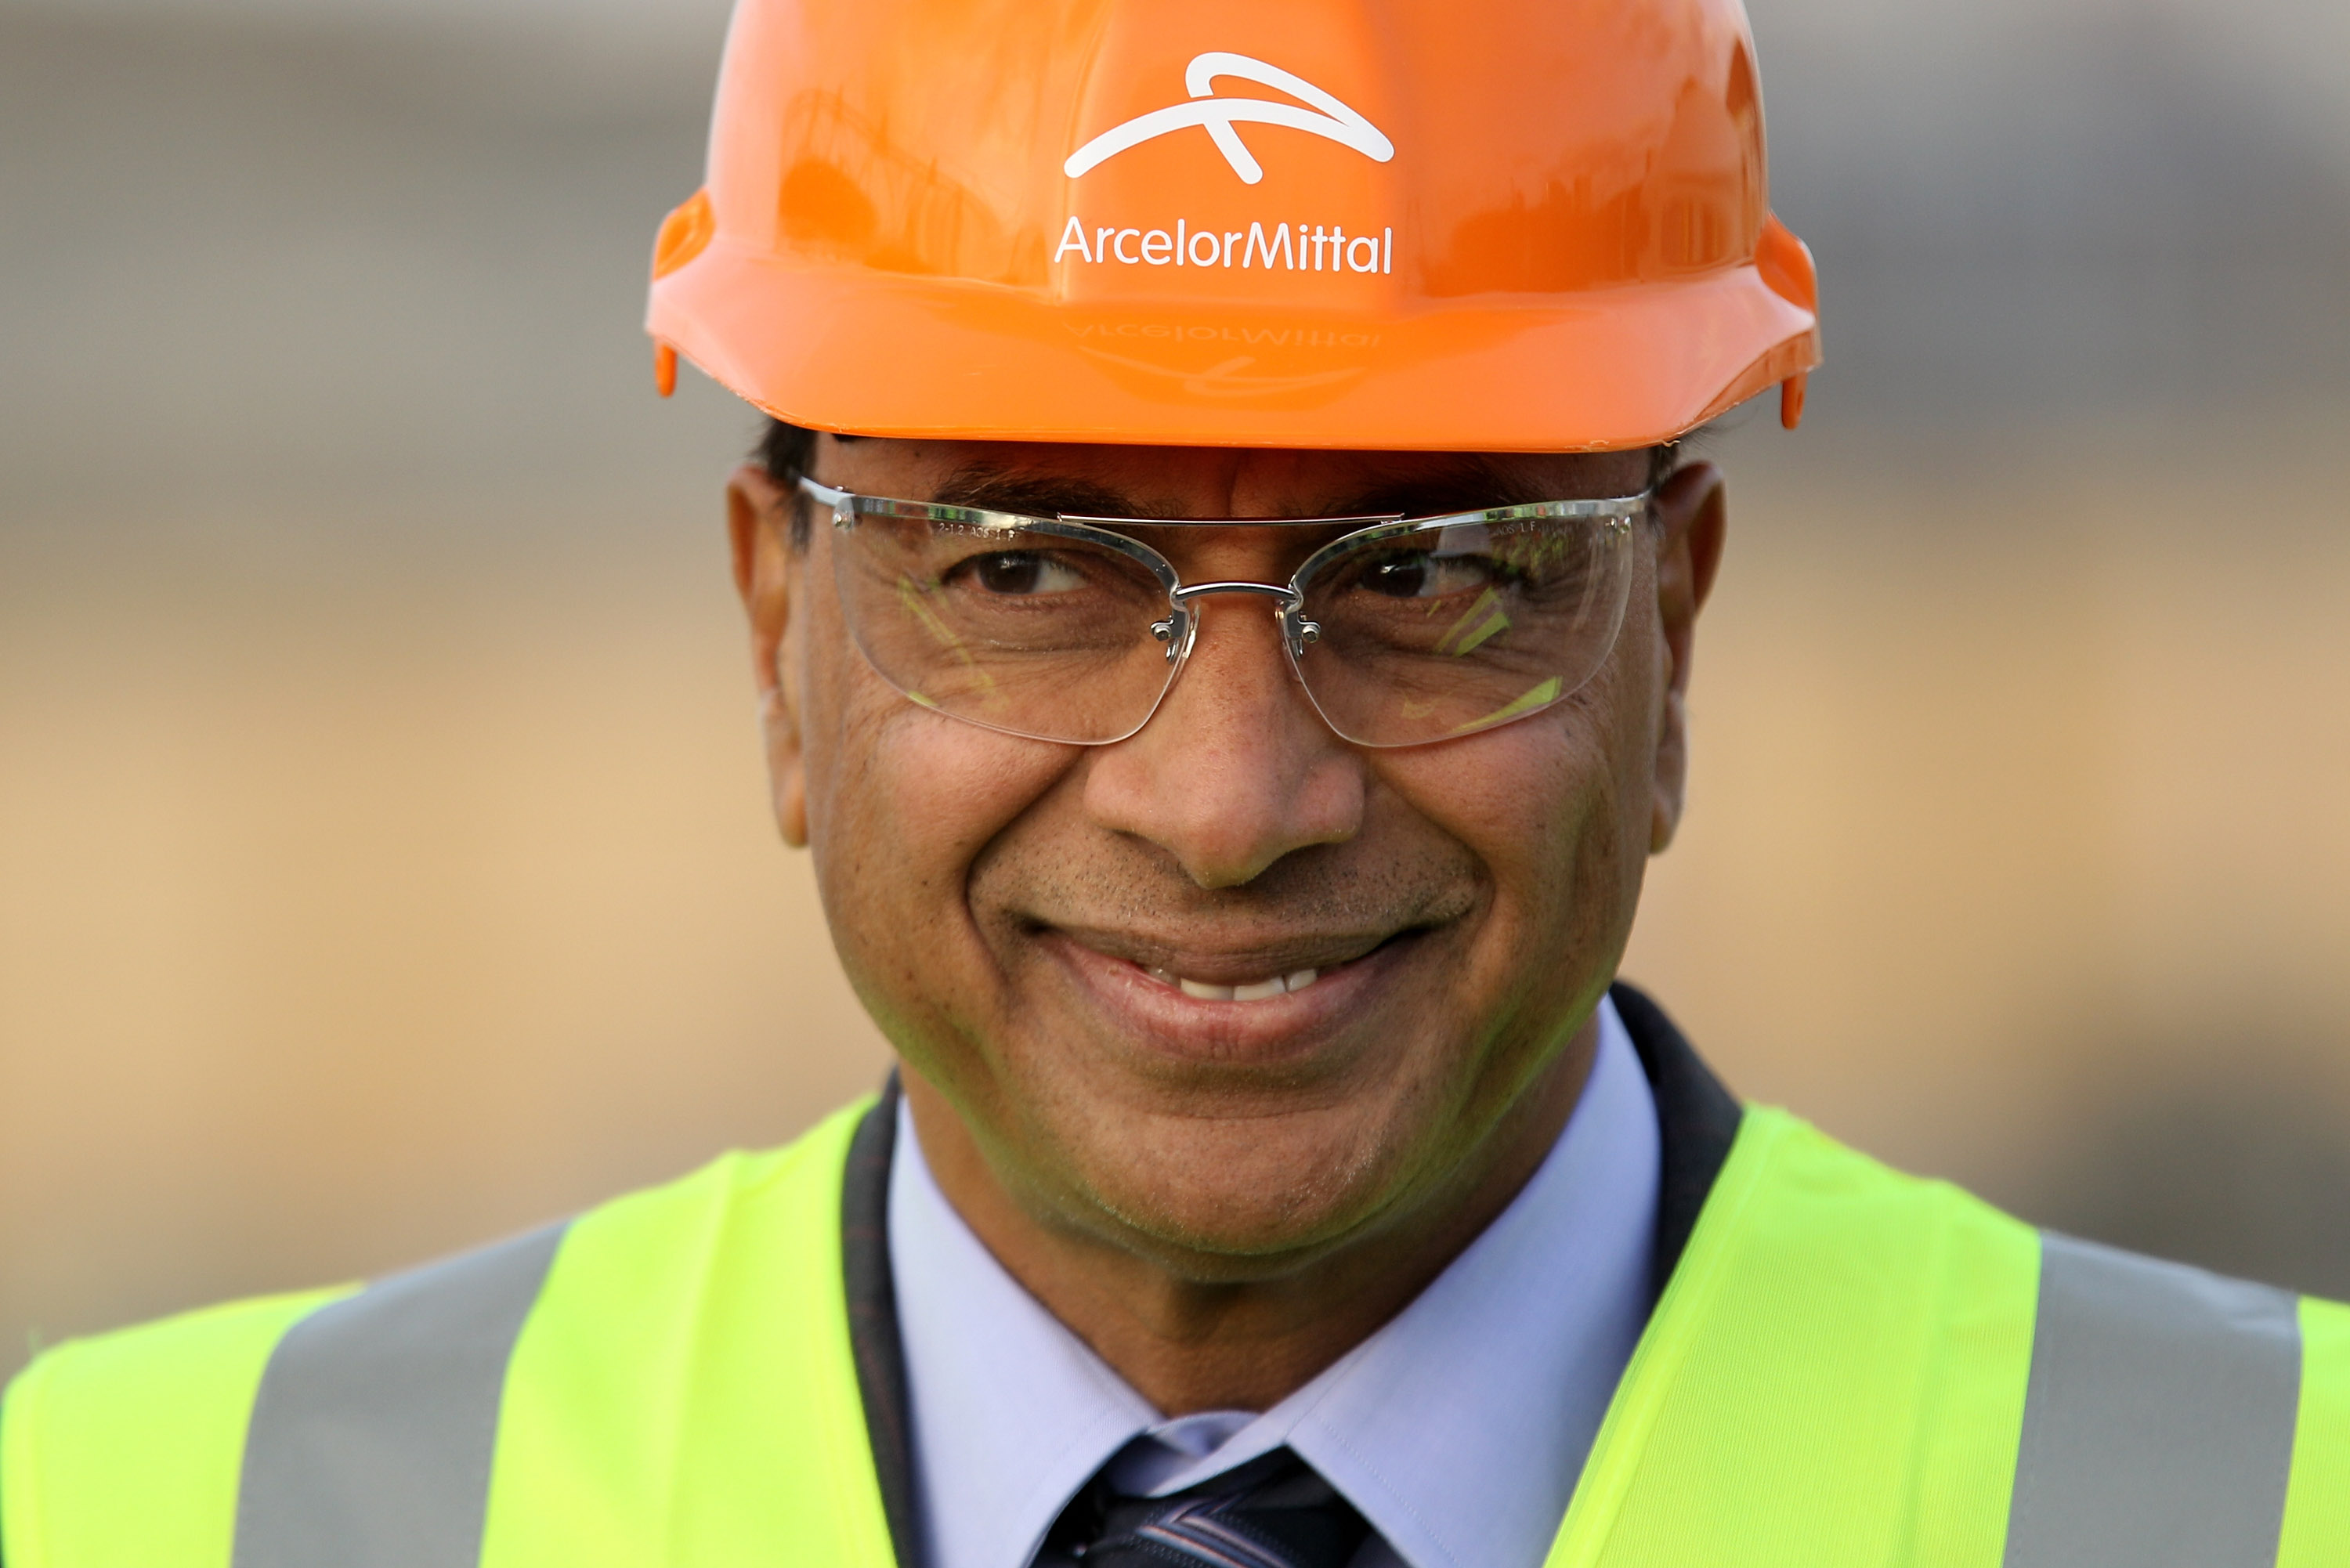 Lakshmi Mittal, the CEO and Chairman of ArcelorMittal, (Photo by Oli Scarff/Getty Images)